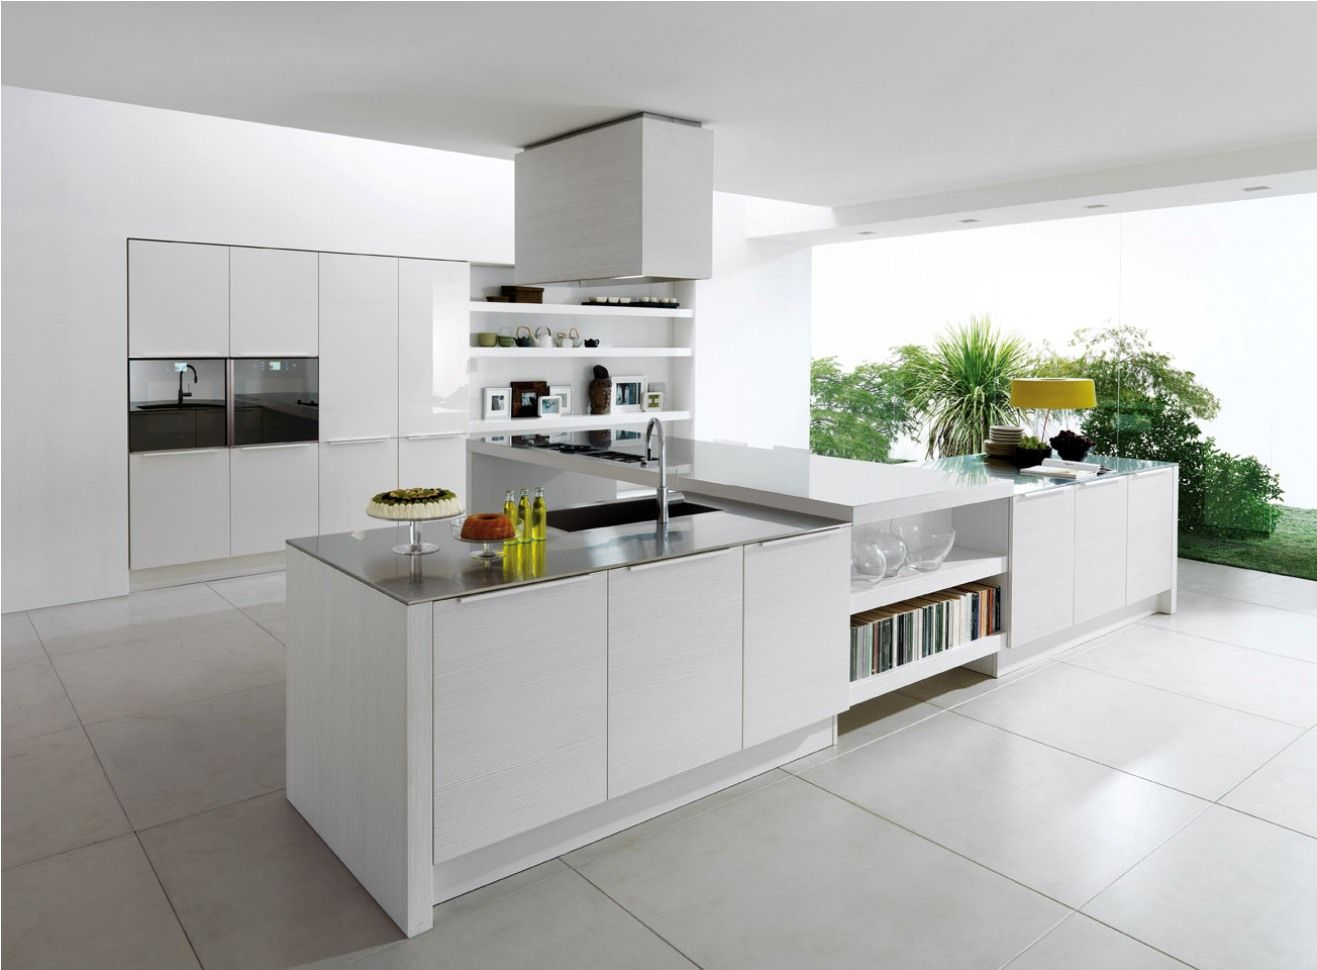 30 contemporary white kitchens ideas modern kitchen designs for Kitchen ideas modern white